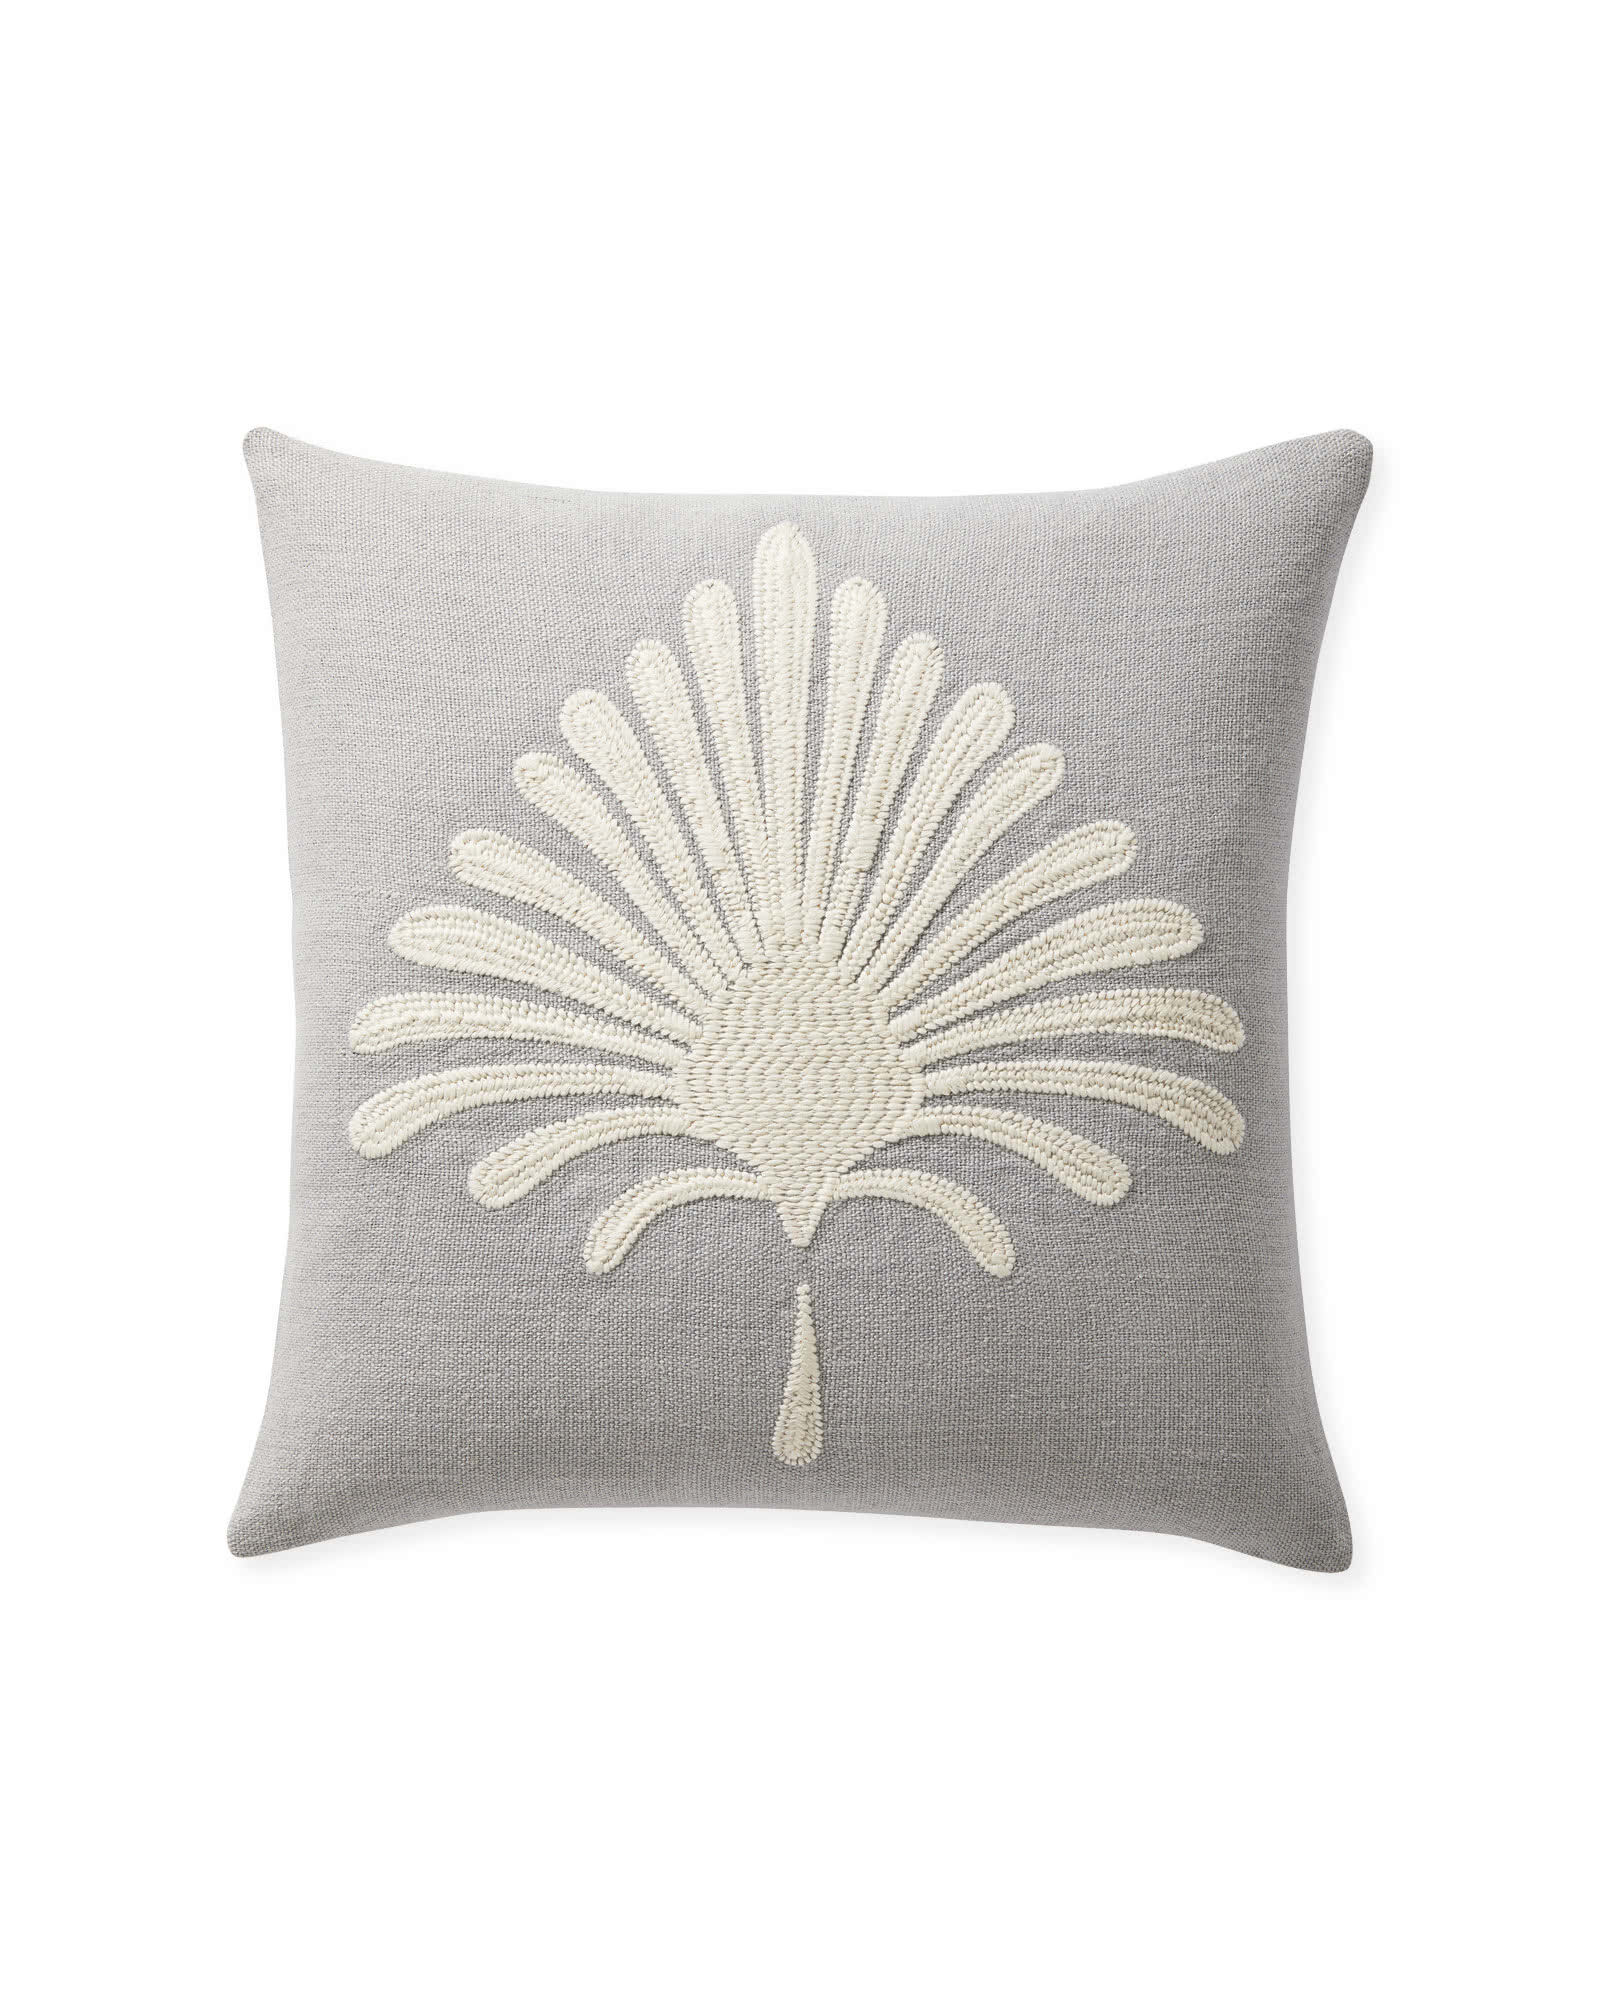 Paloma Embroidered Pillow Cover, Smoke